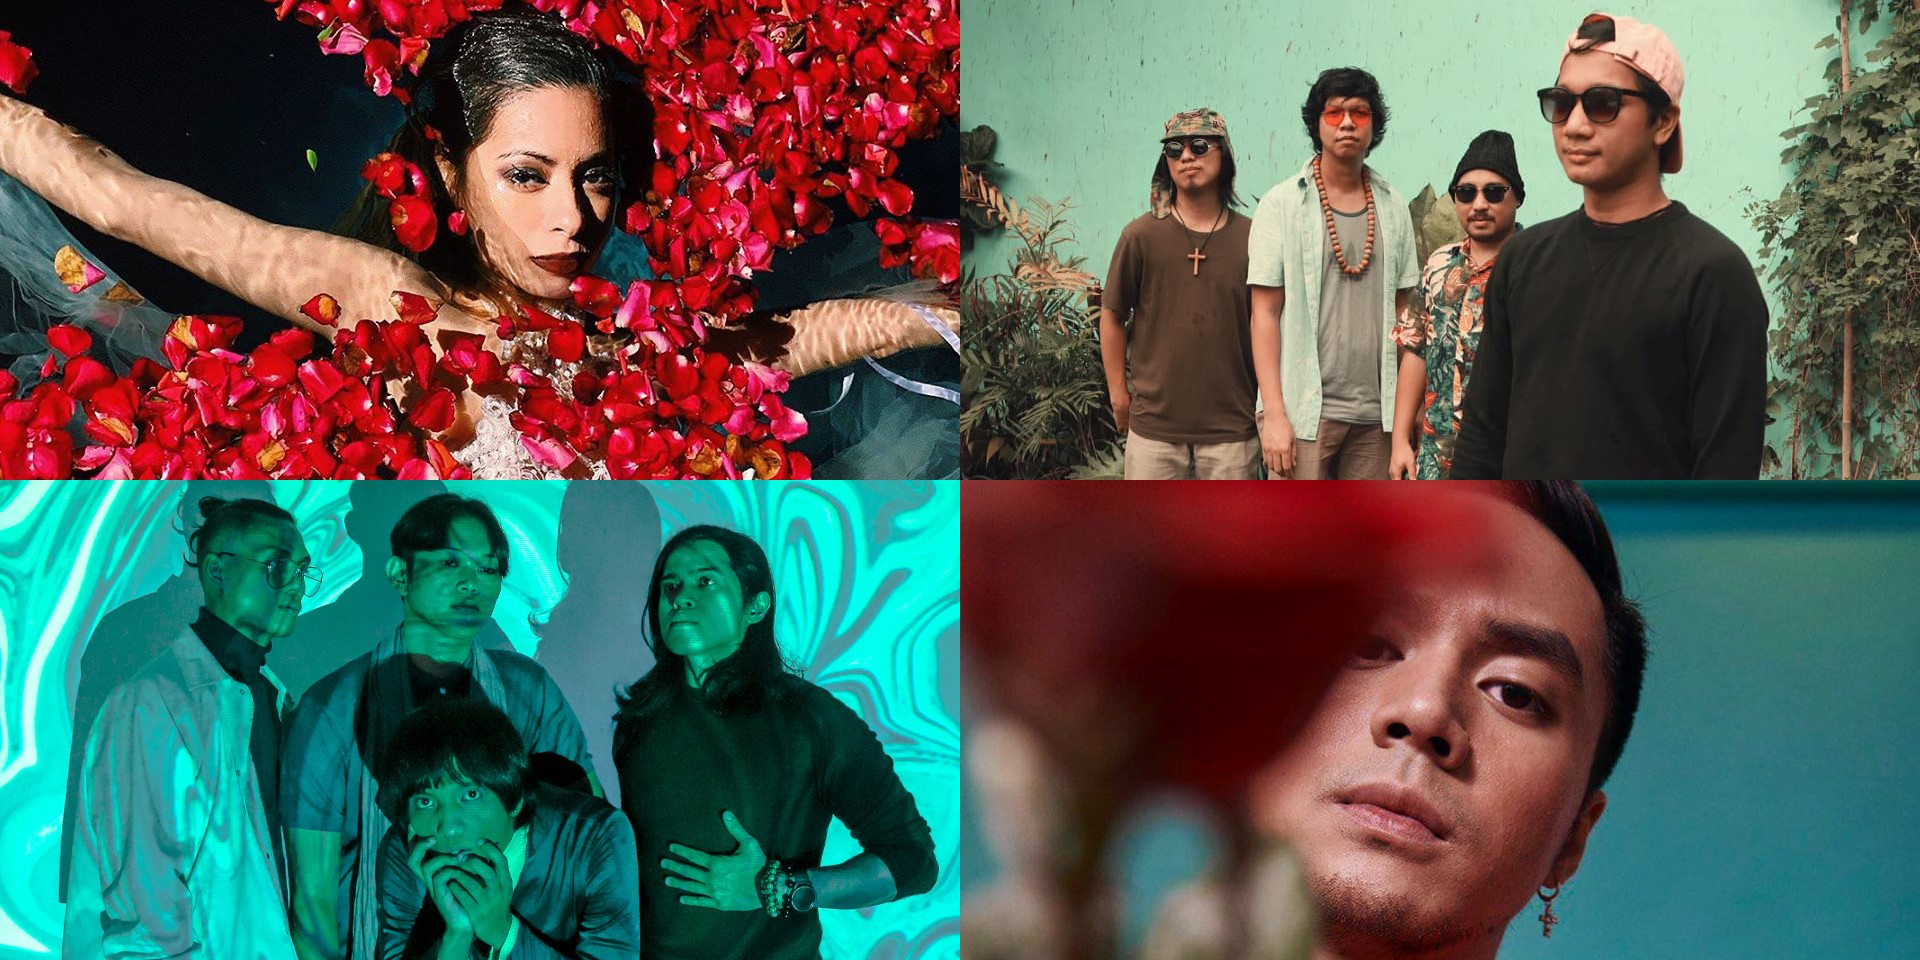 Kat Agarrado, Sam Concepcion, Giniling Festival, Calein, and more release new music – listen